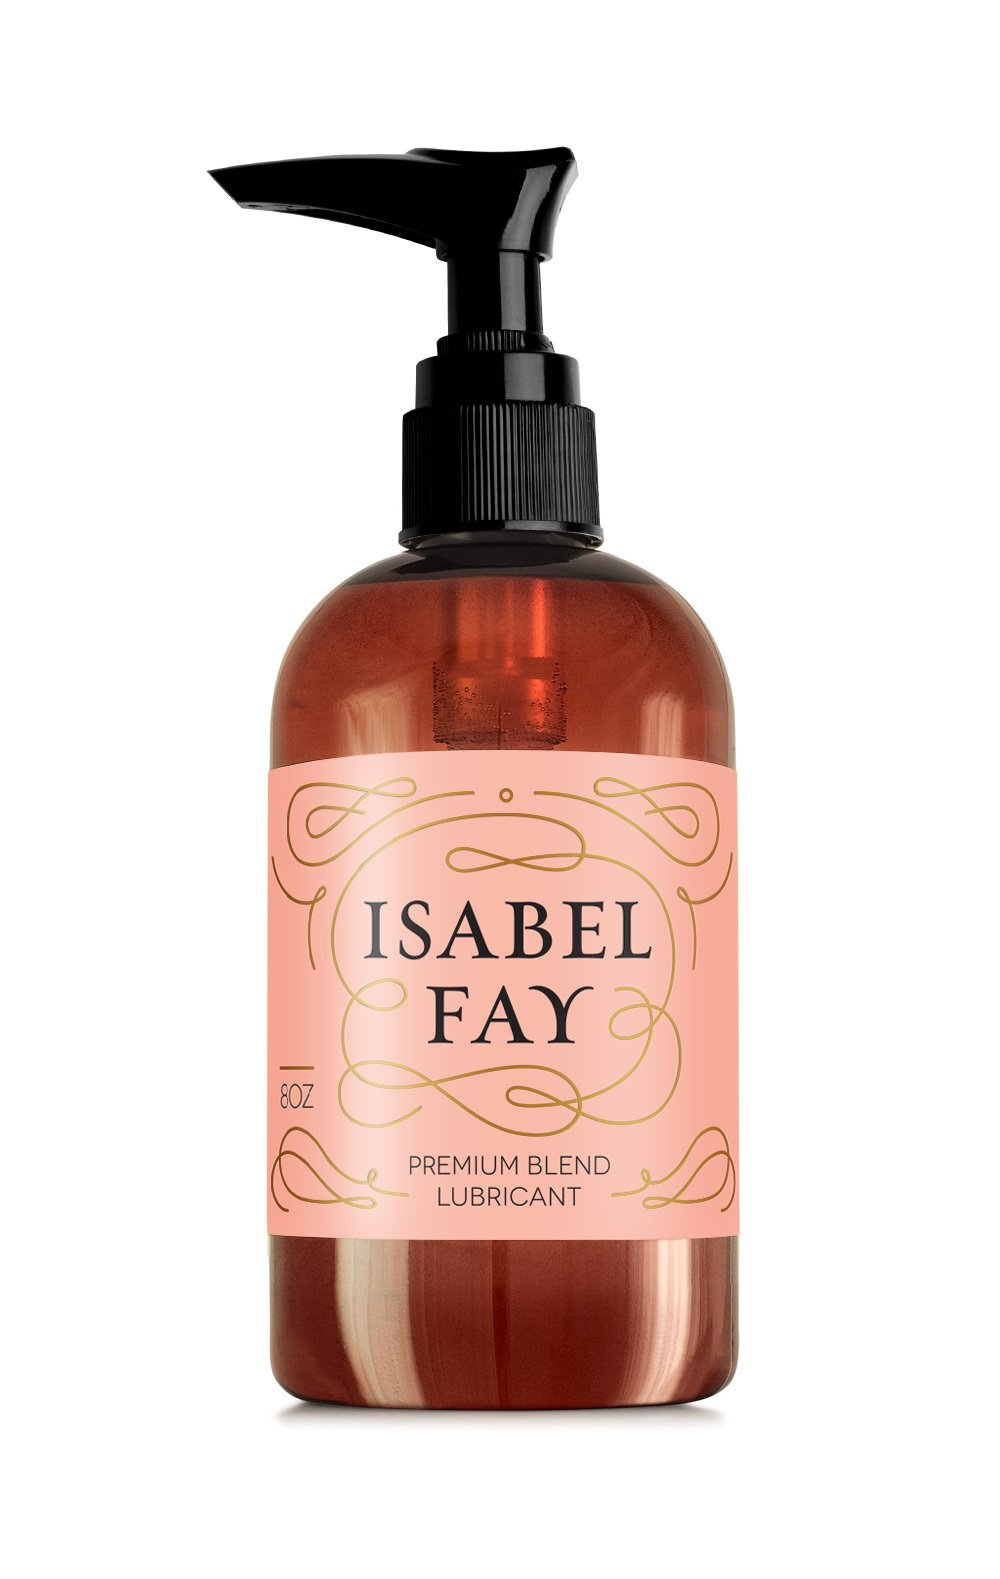 Long Lasting Water Based Hybrid Personal Lubricant for Sensitive Skin - 8 oz - Isabel Fay - Sex Lube for Women and Men - Sex Gel That Provides Long Lasting Lubrication